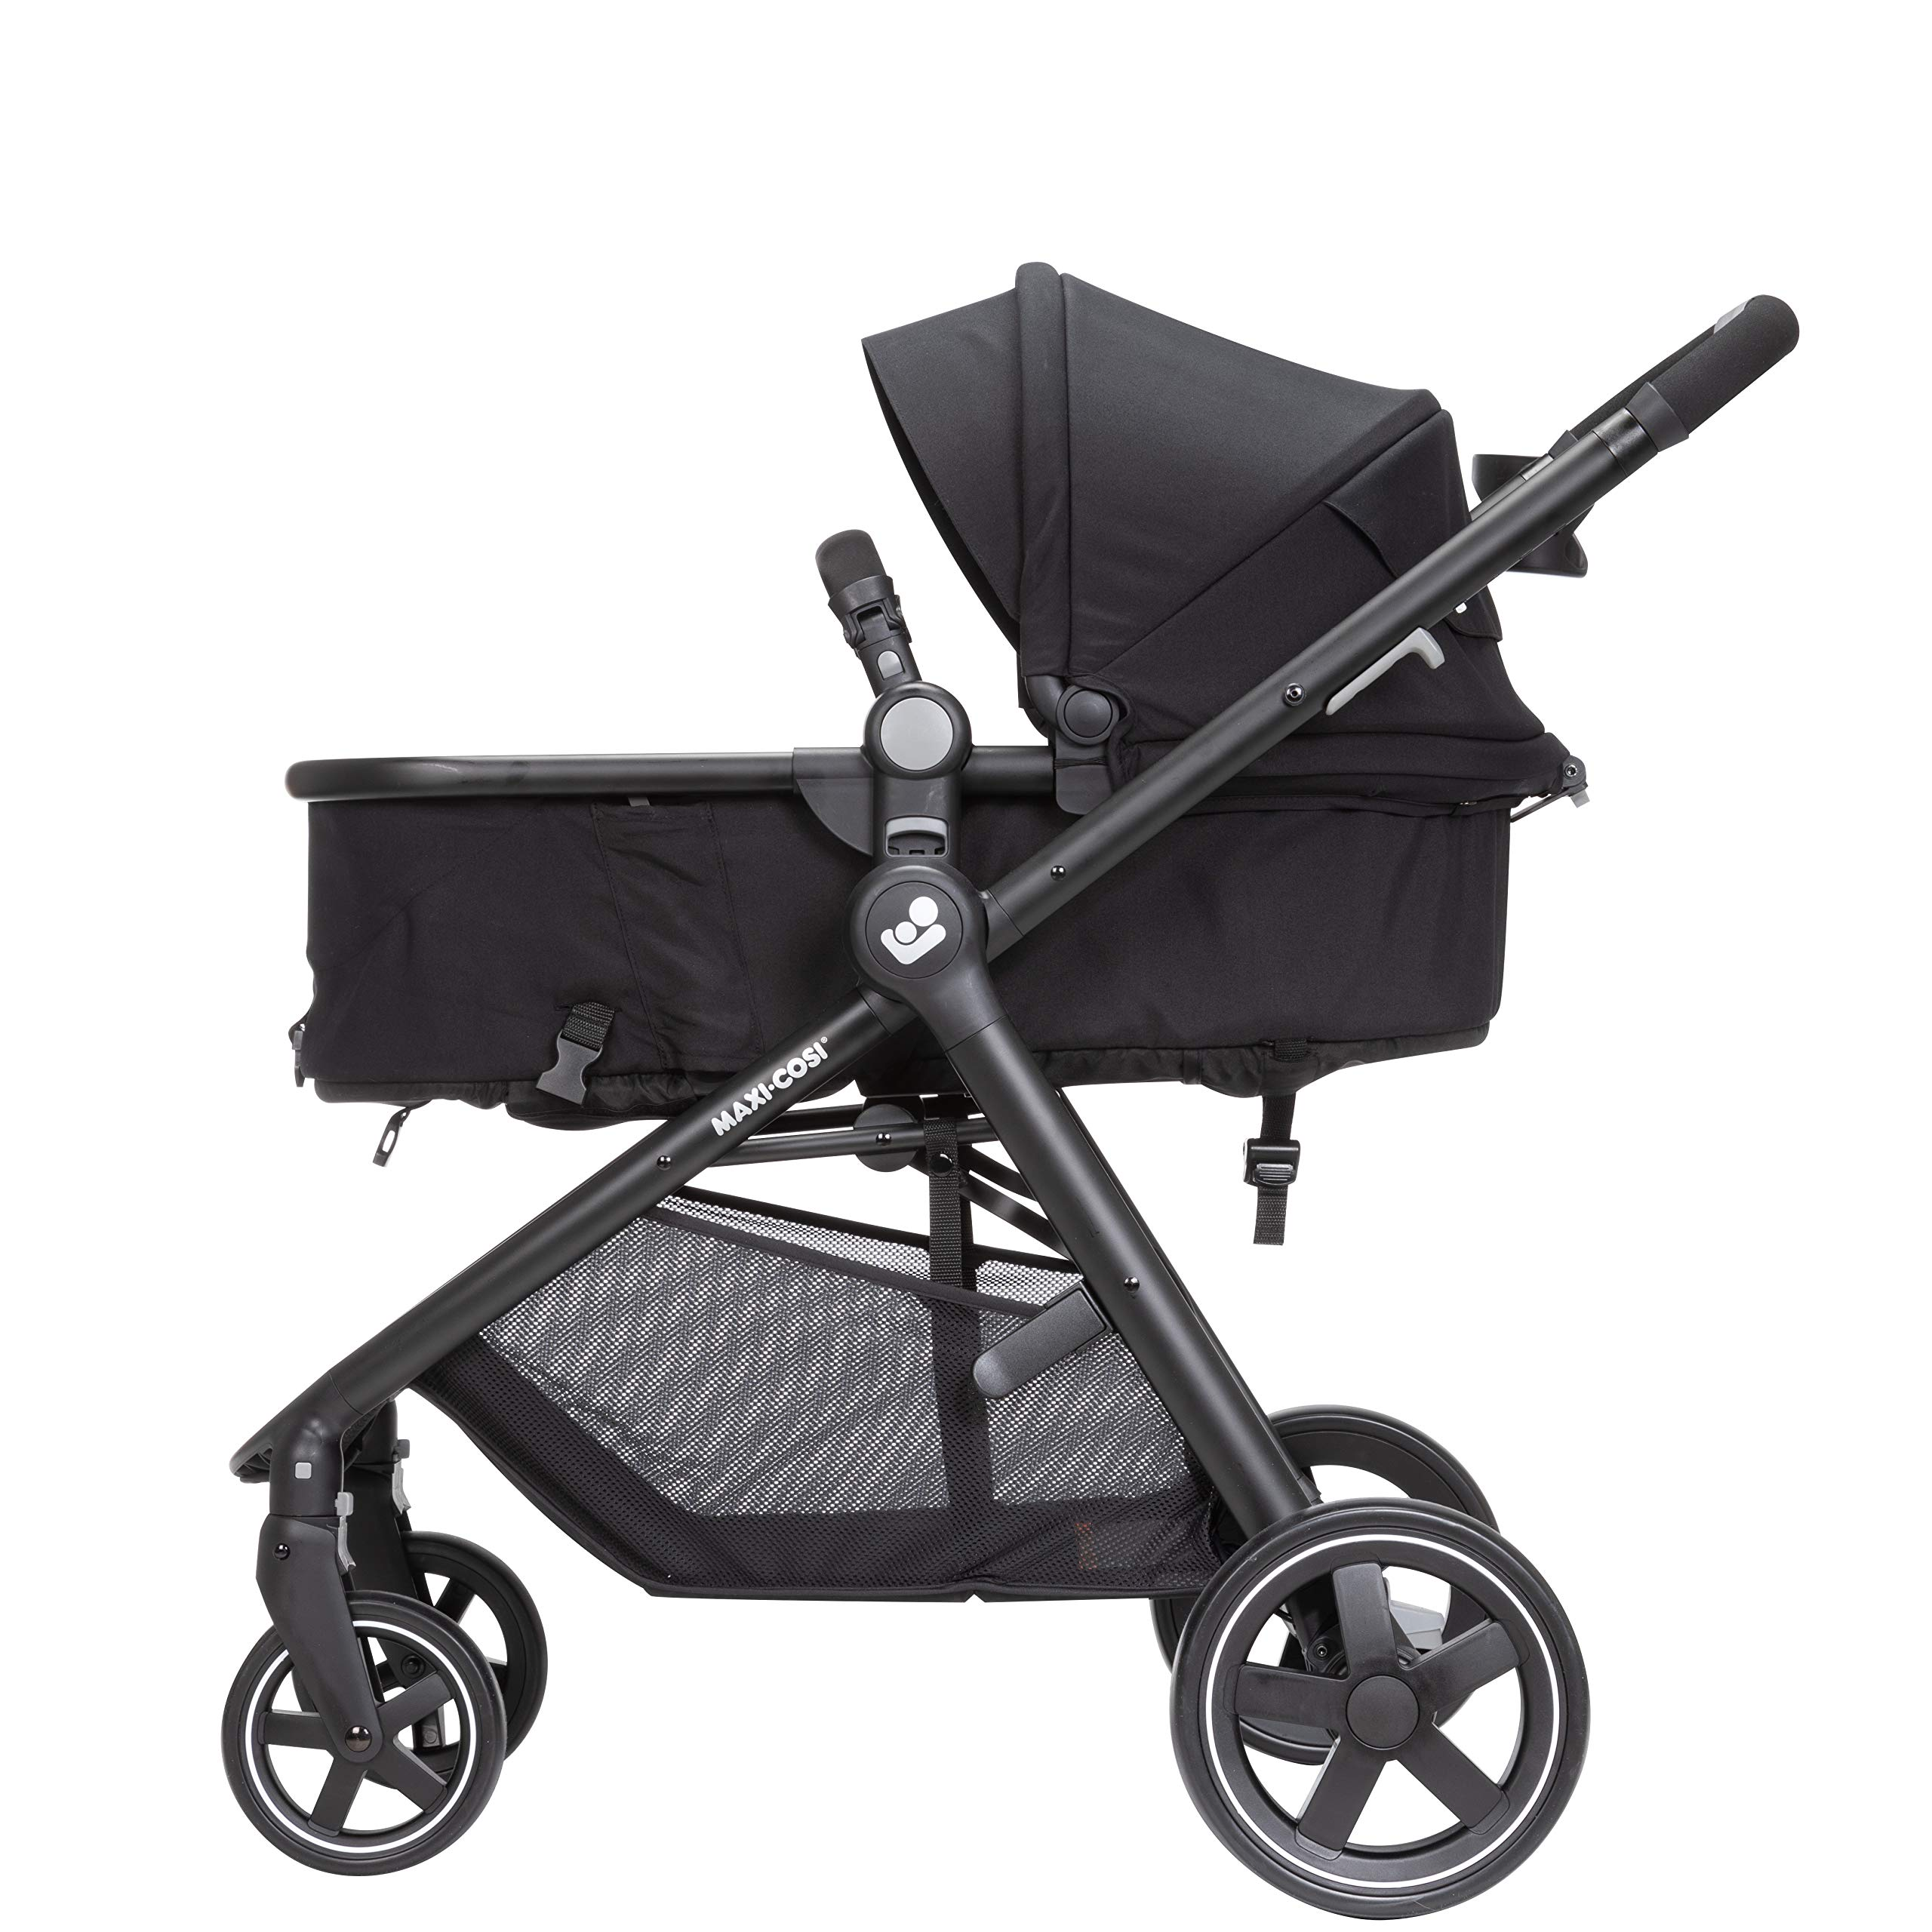 Maxi-Cosi Zelia Stroller, Night Black, One Size by Maxi-Cosi (Image #8)